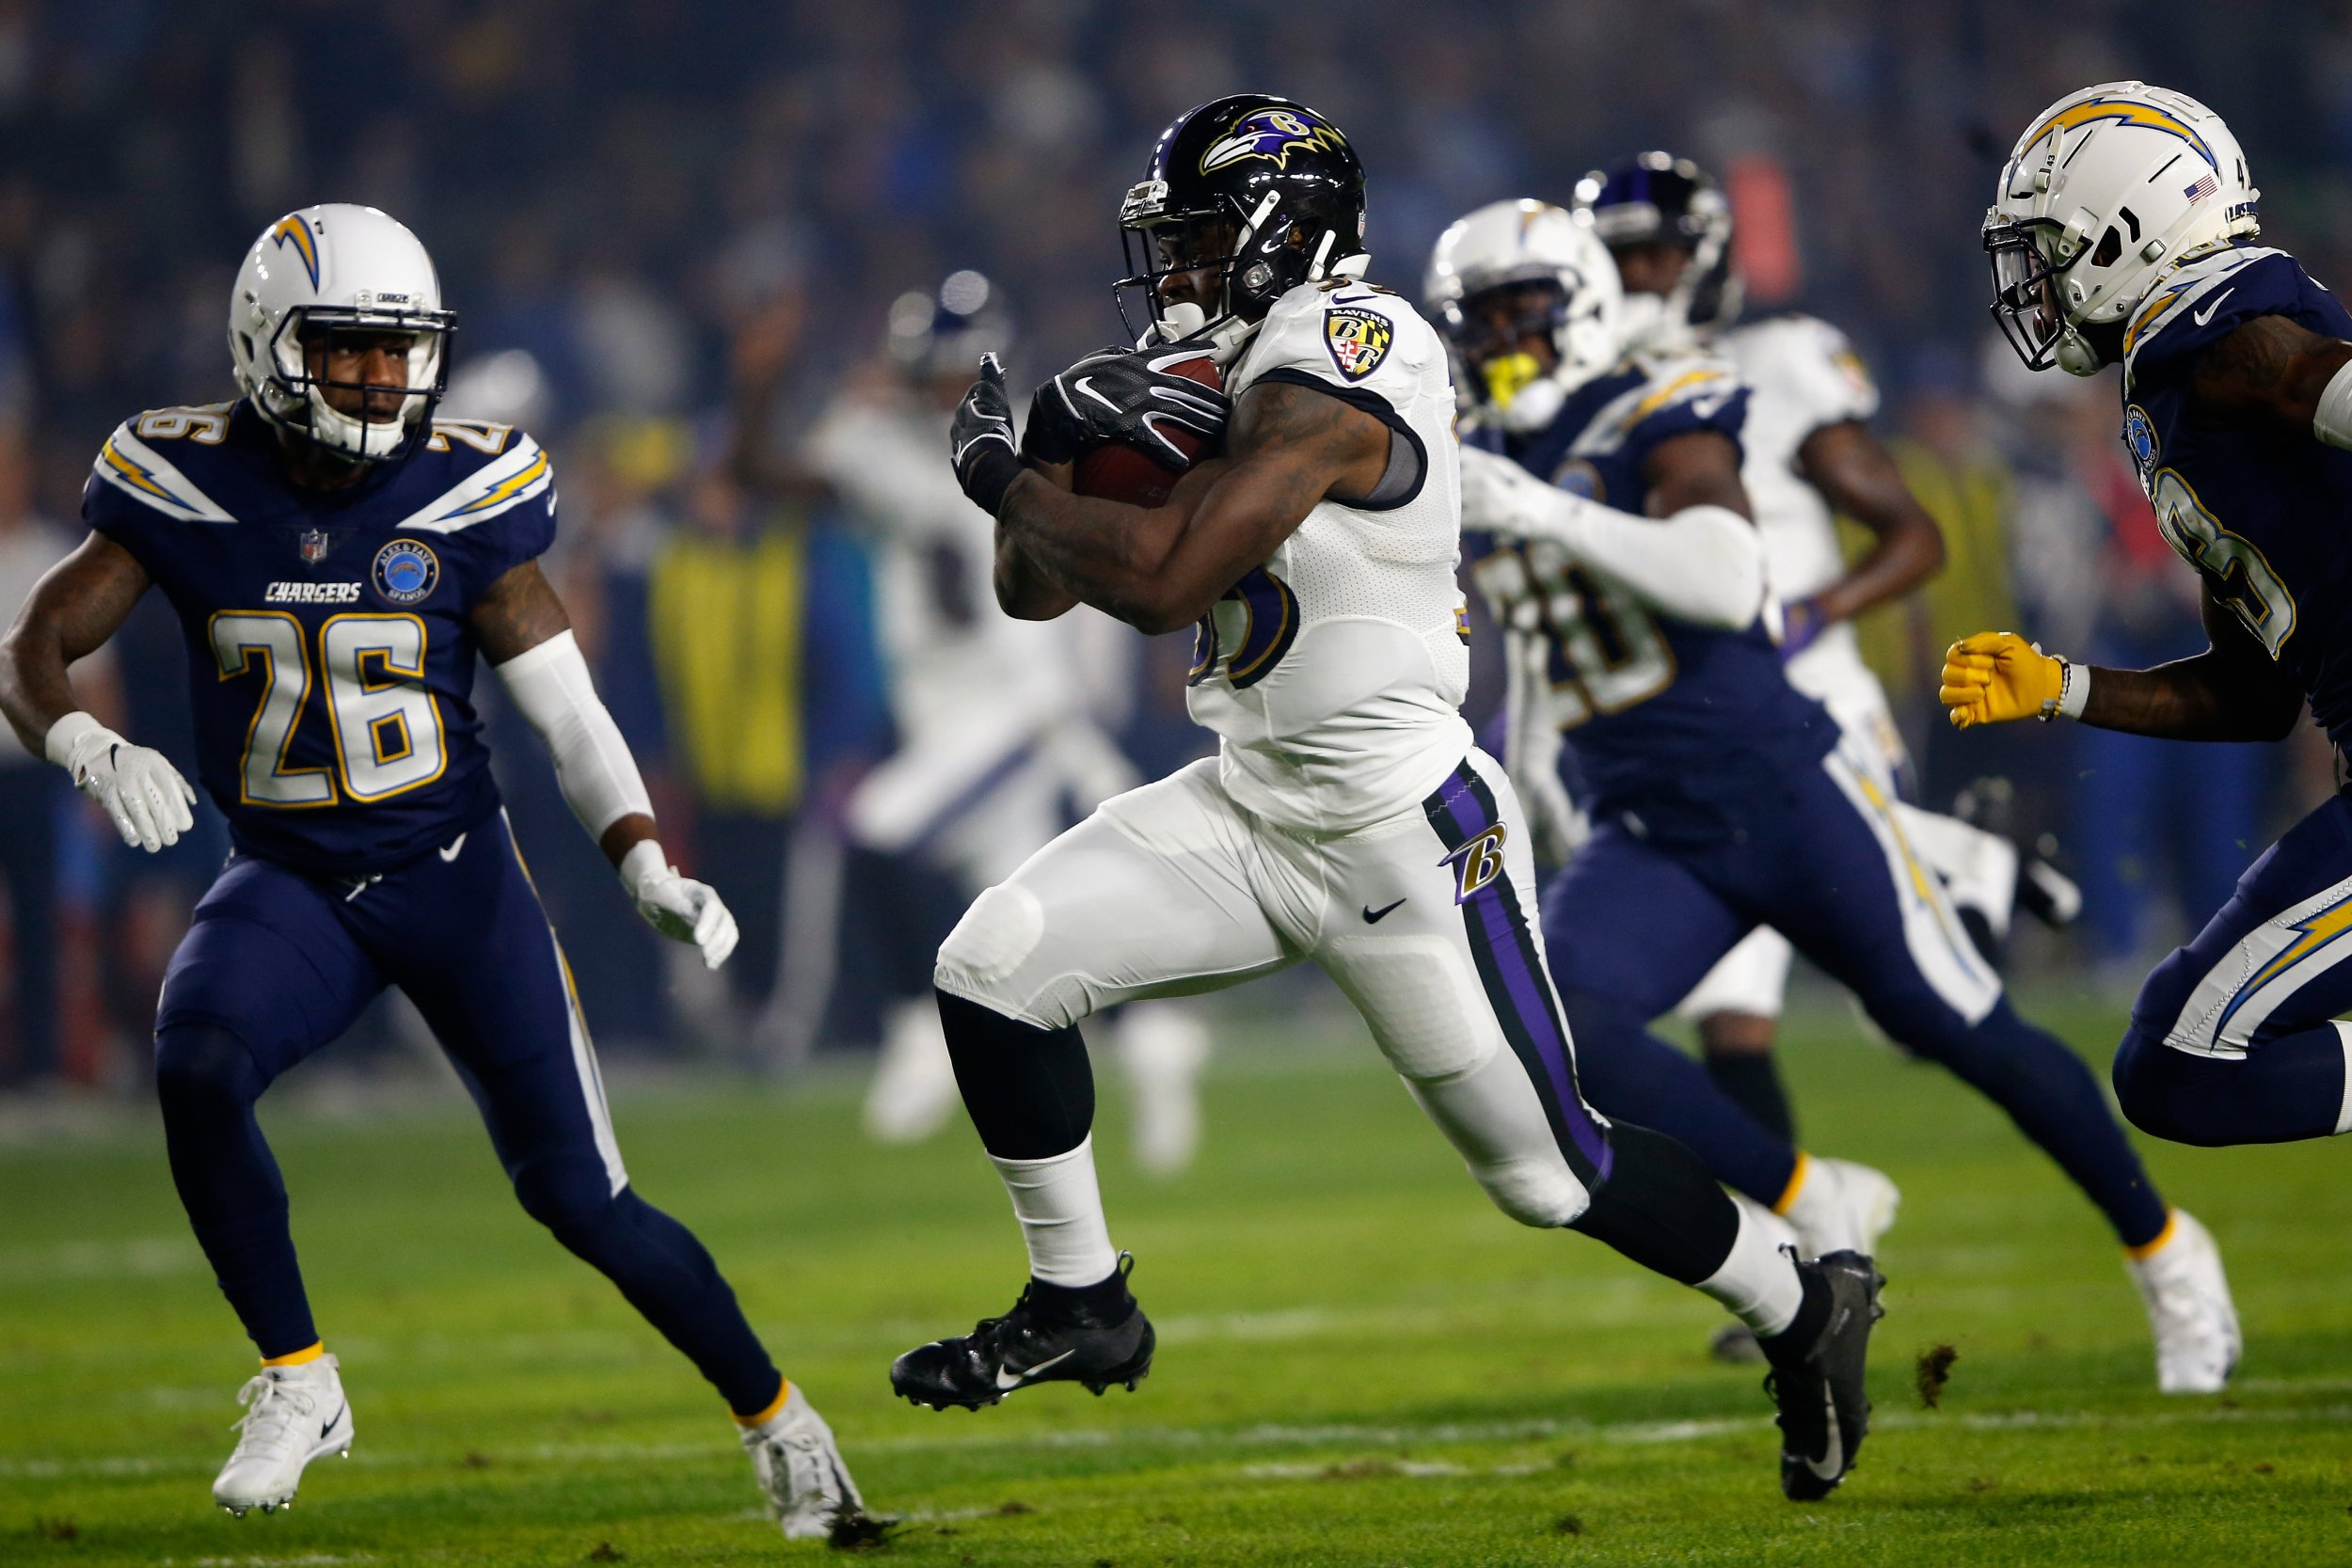 Nfl Playoff Picture 2019 Updated Bracket Divisional